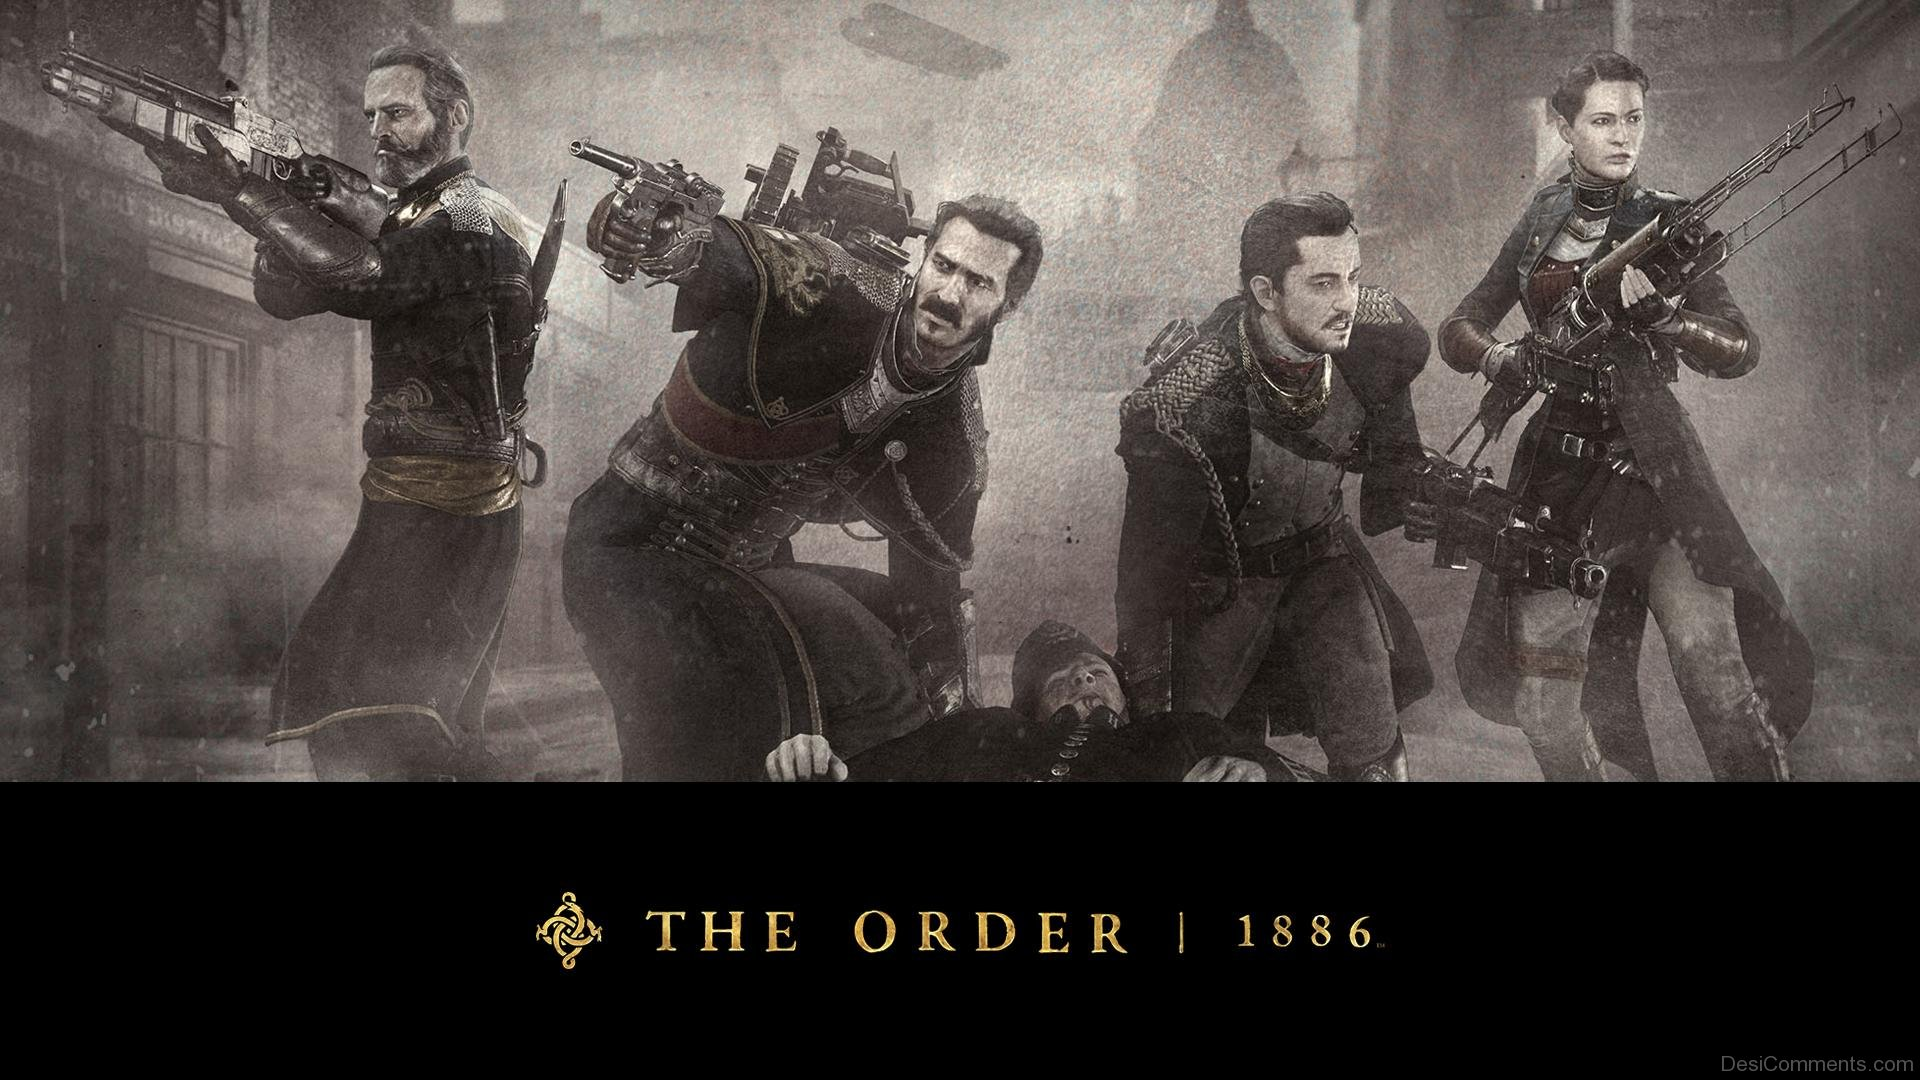 The Order 1886 Game Poster - DesiComments.com